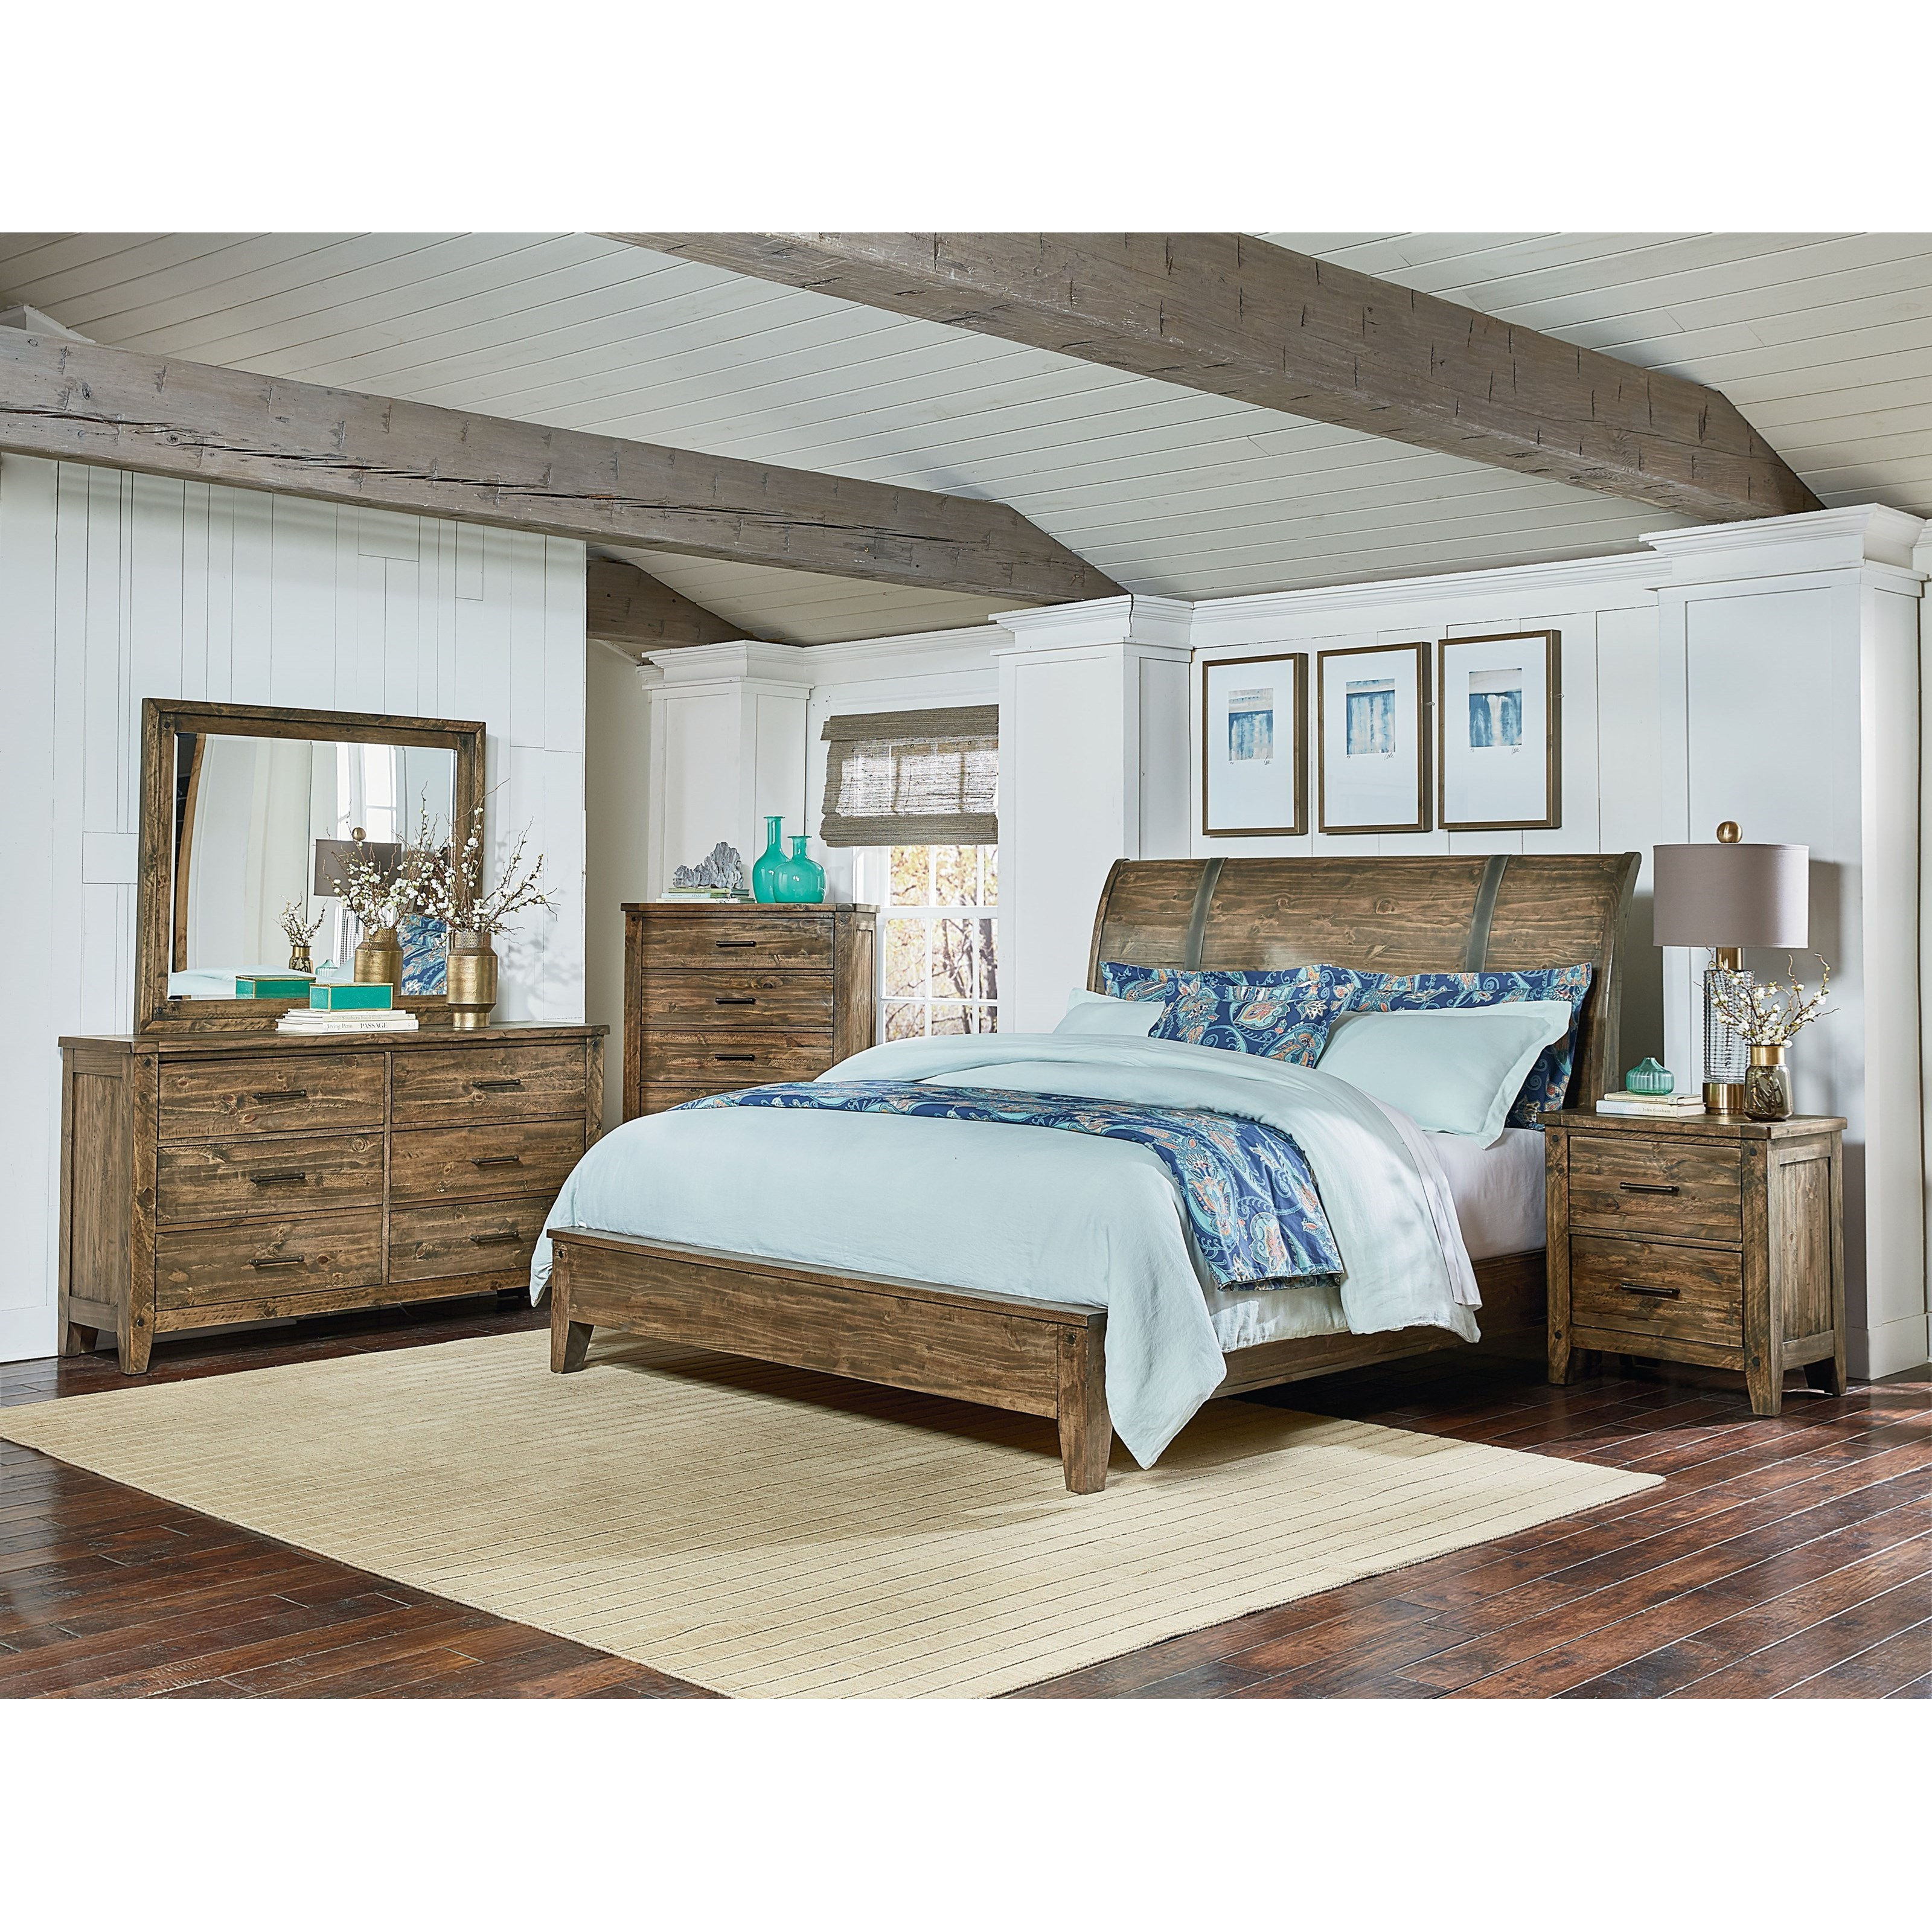 Standard Furniture Nelson King Bedroom Group Dunk Bright Furniture Bedroom Groups